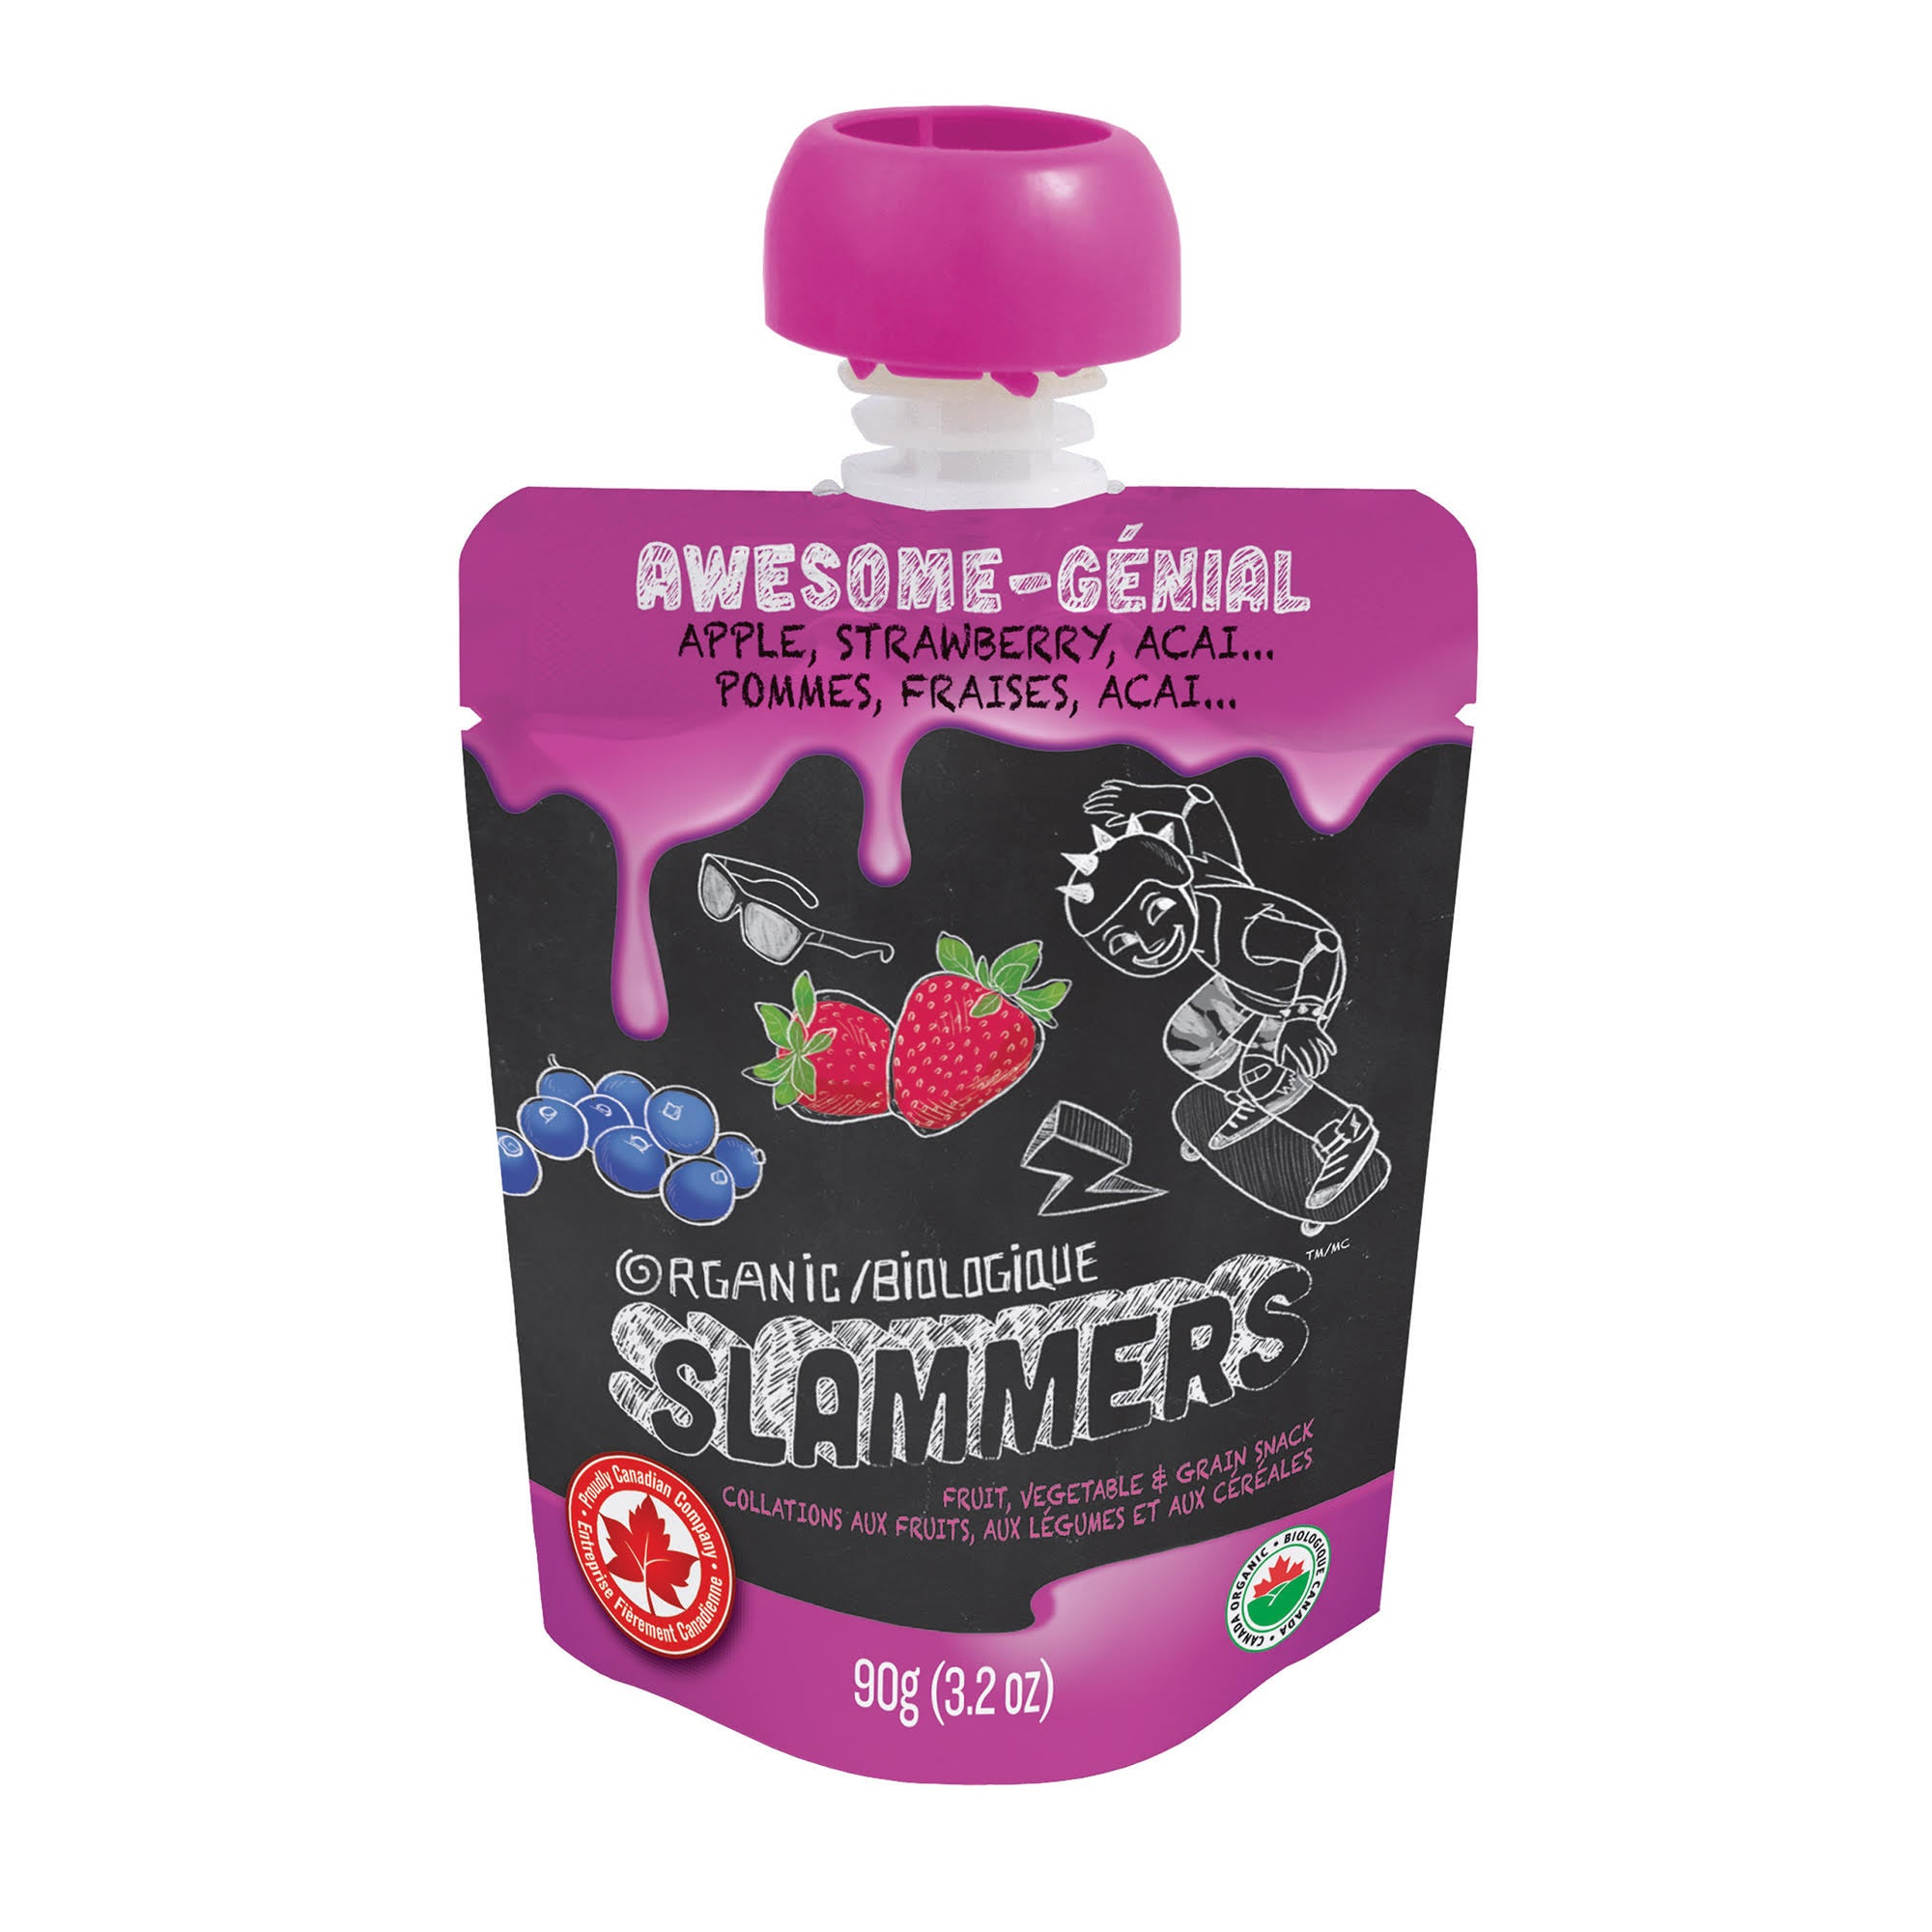 Slammers Awesome Acai Strawberry Apple